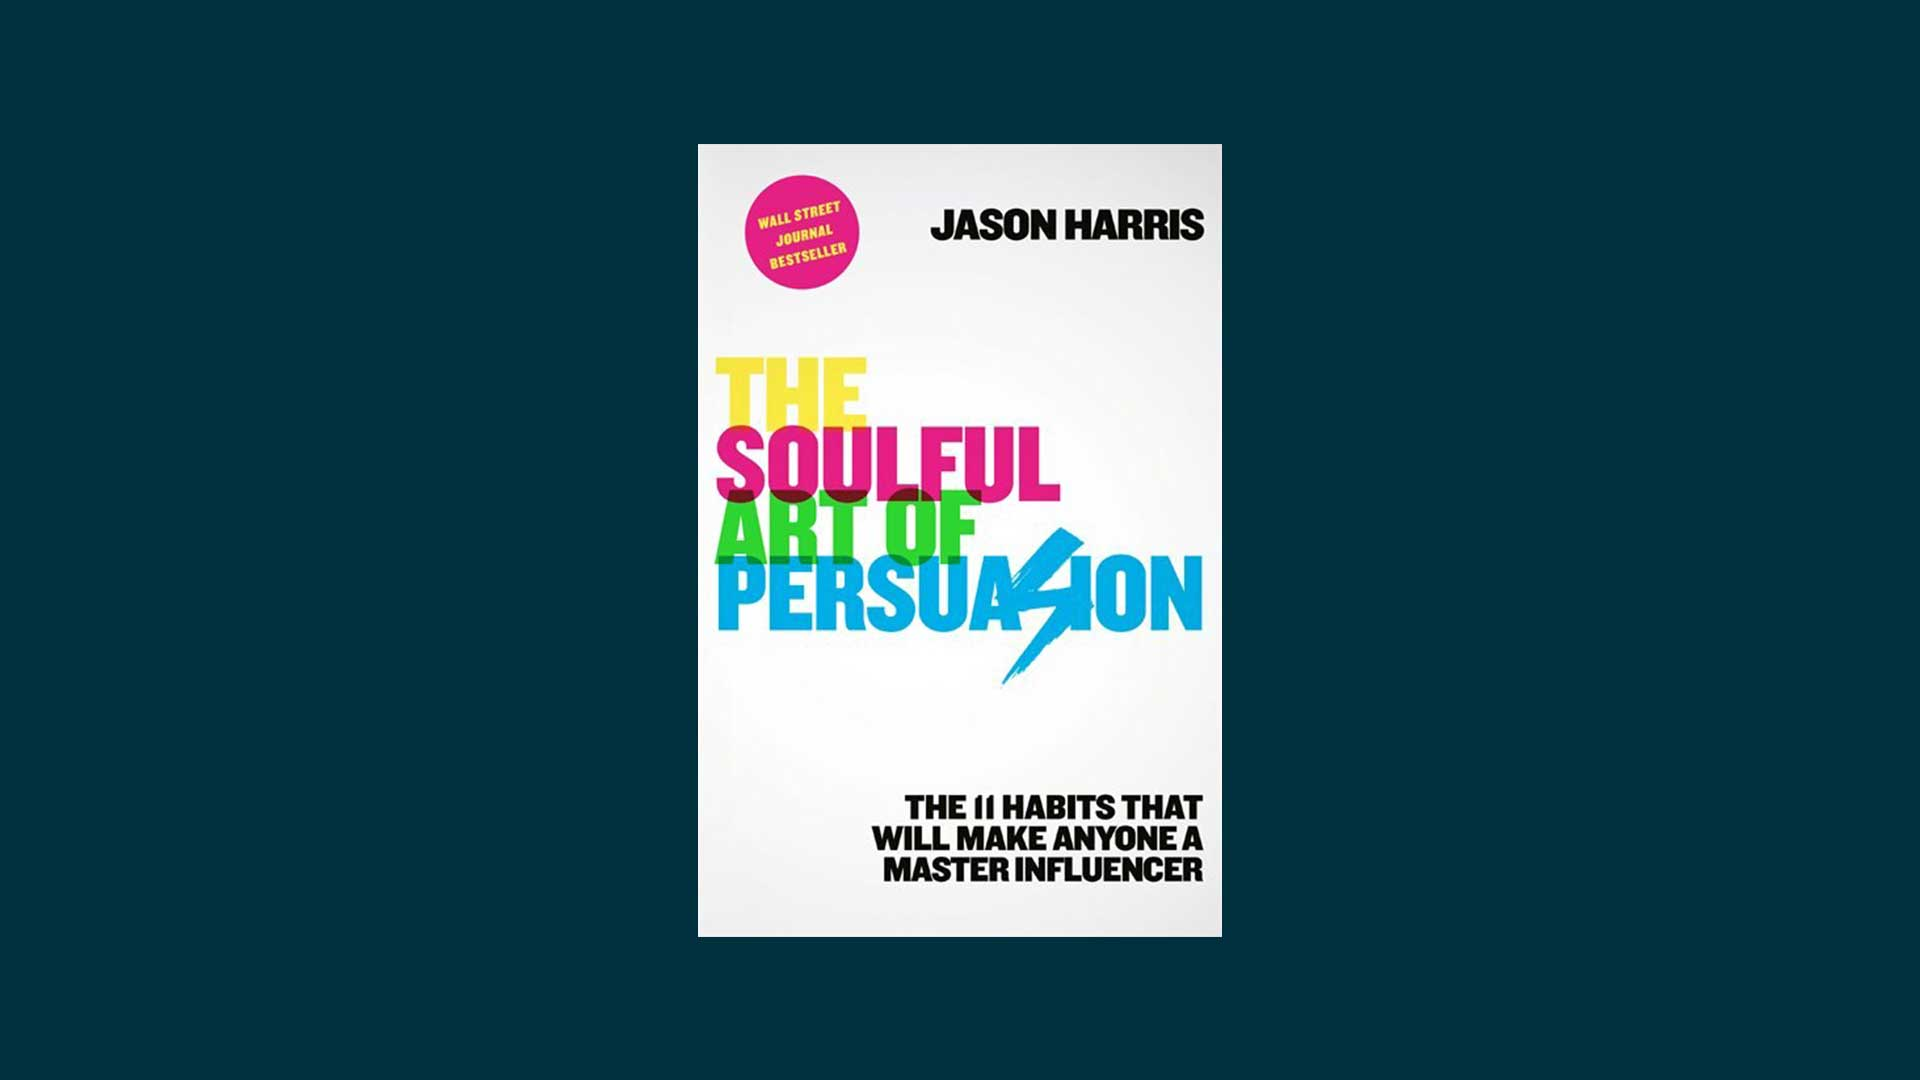 The Soulful Art Of Persuasion book.